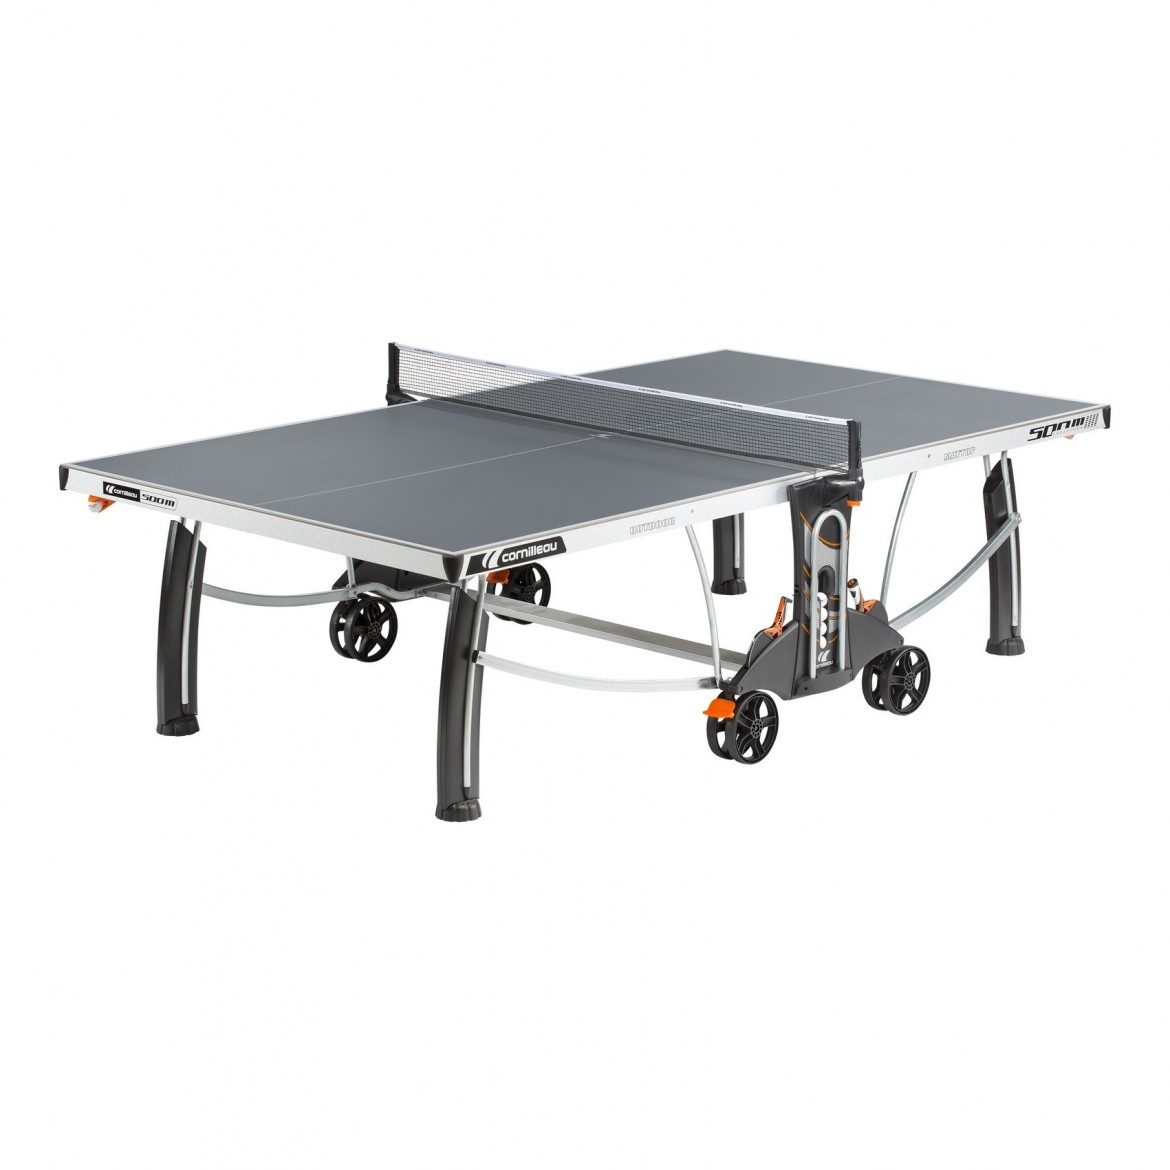 Table tennis table 500M CROSSOVER - Cornilleau